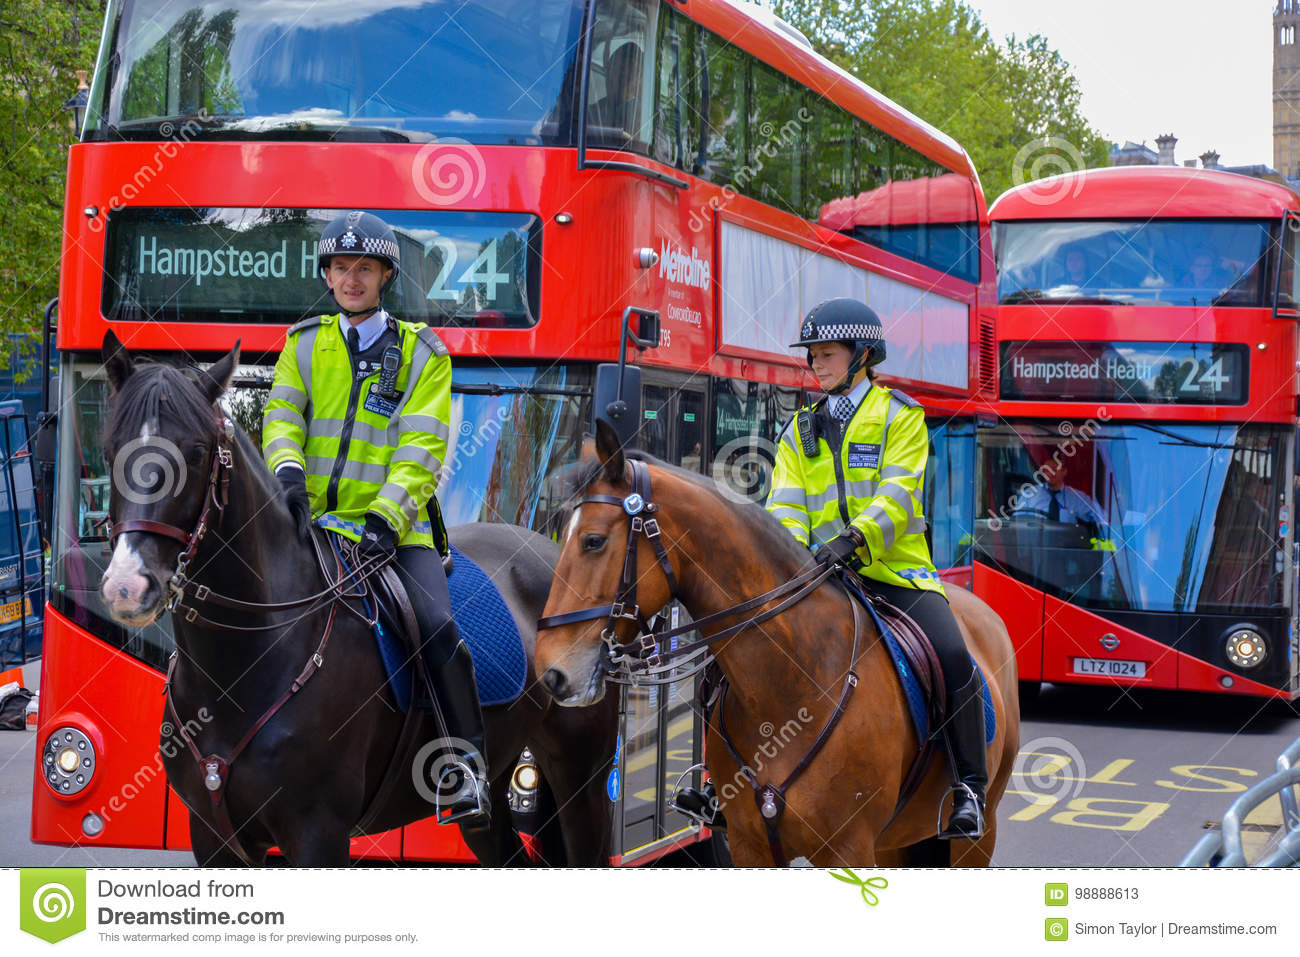 Two police officers on horses